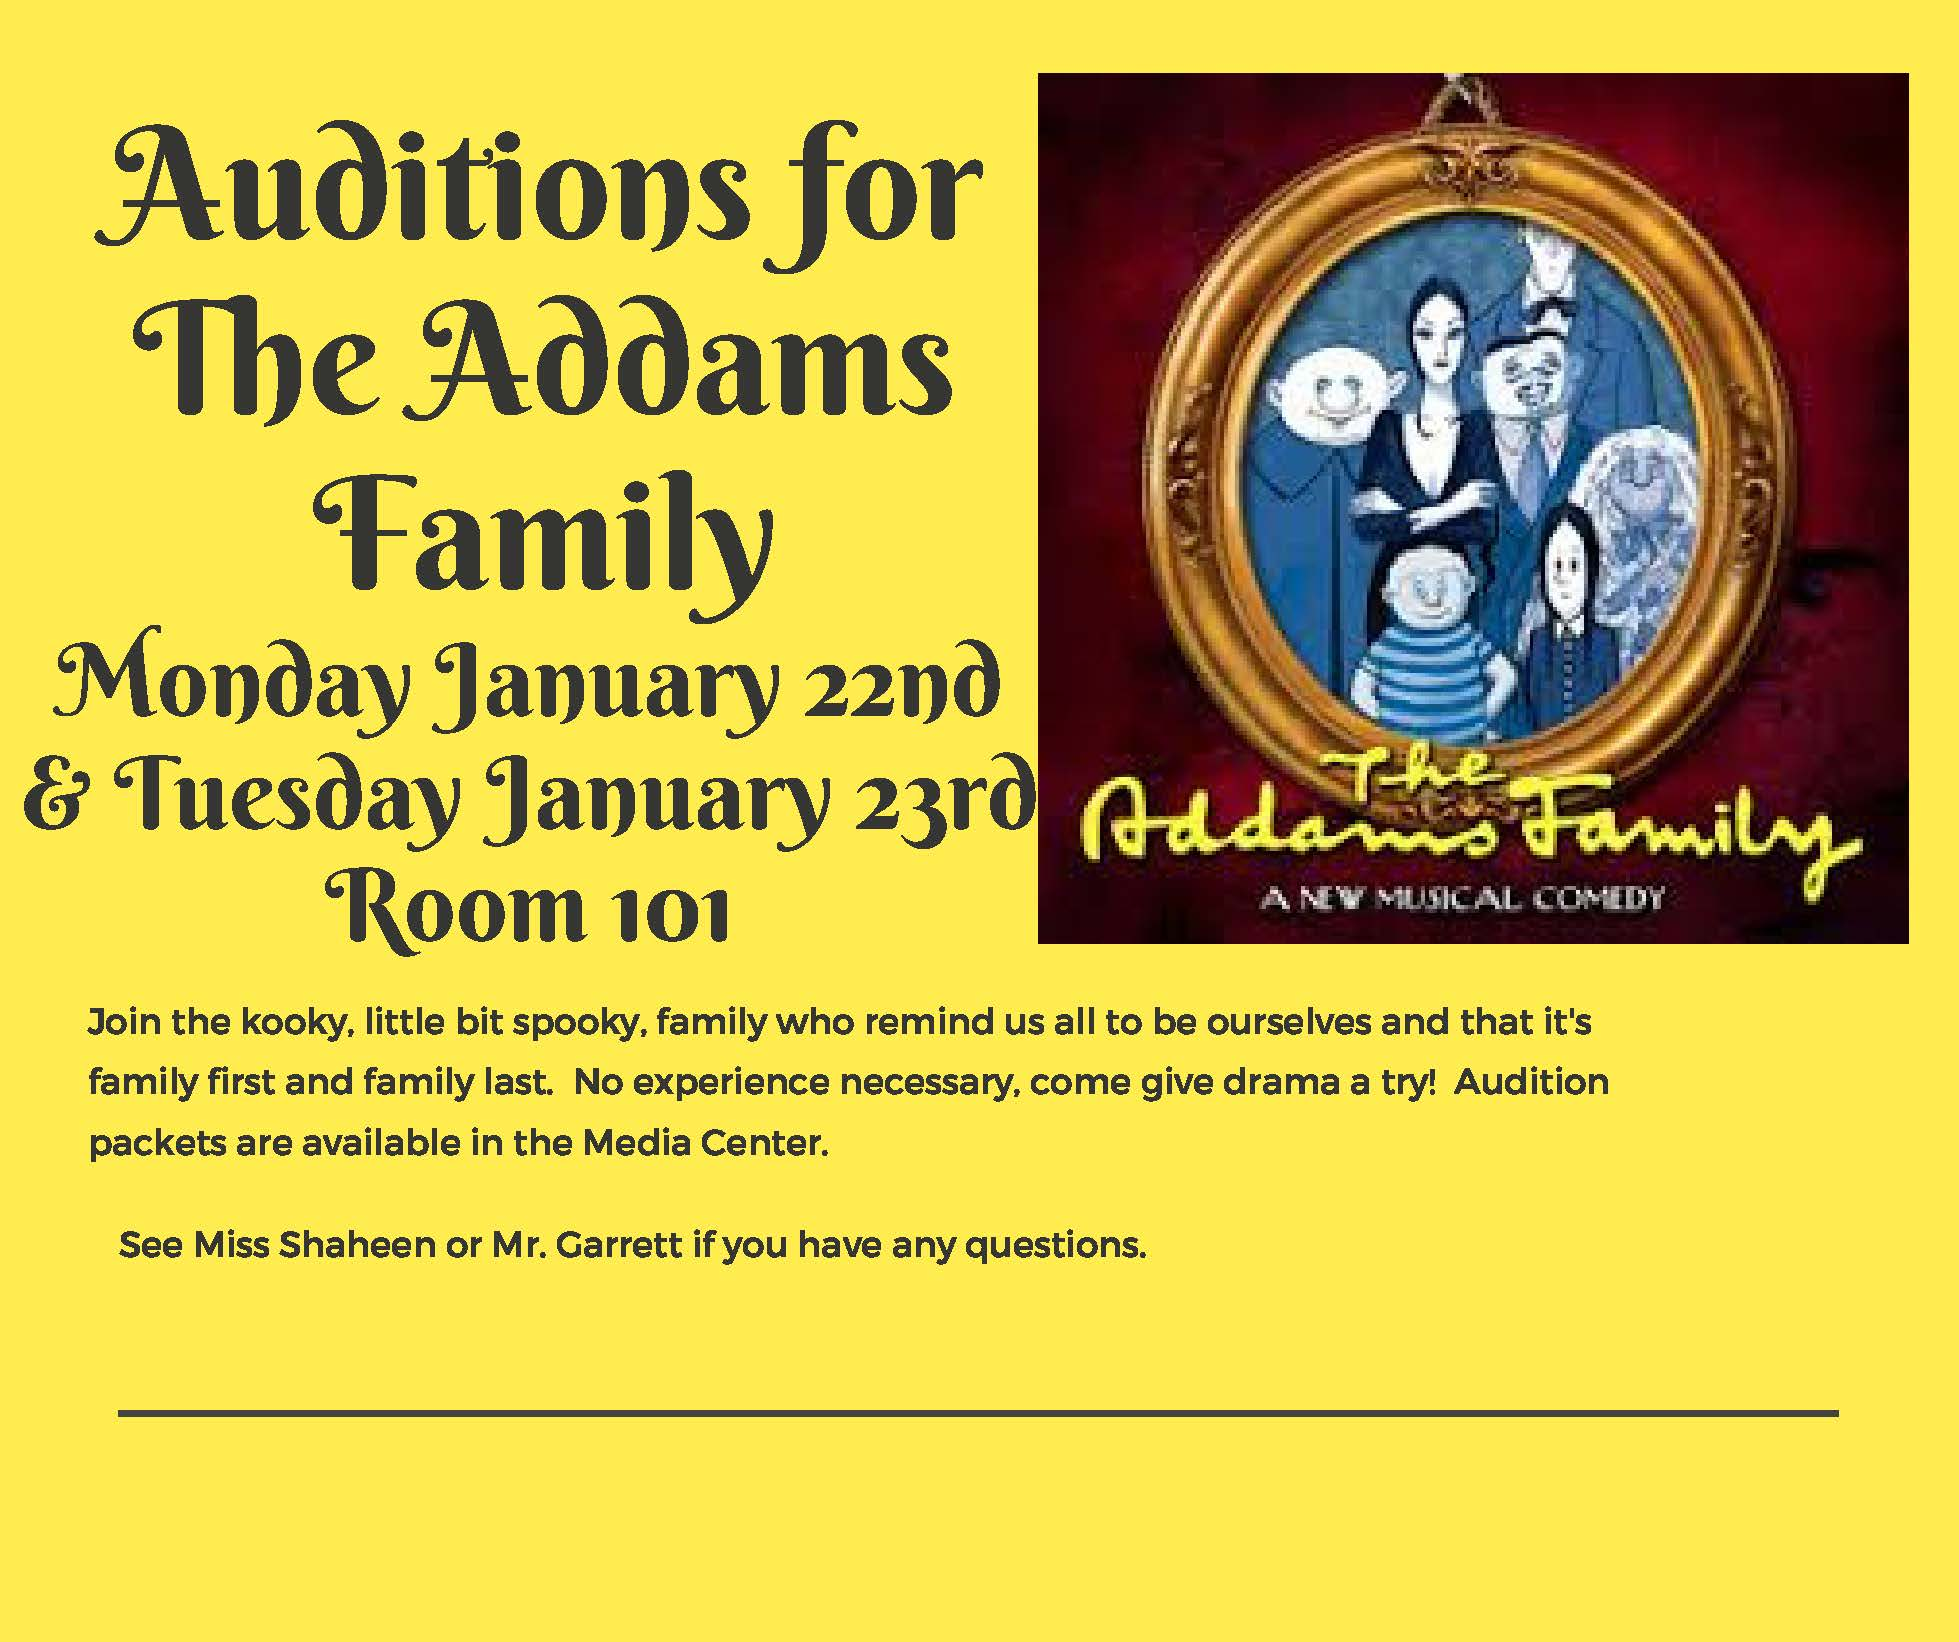 adams-family-auditions.jpg